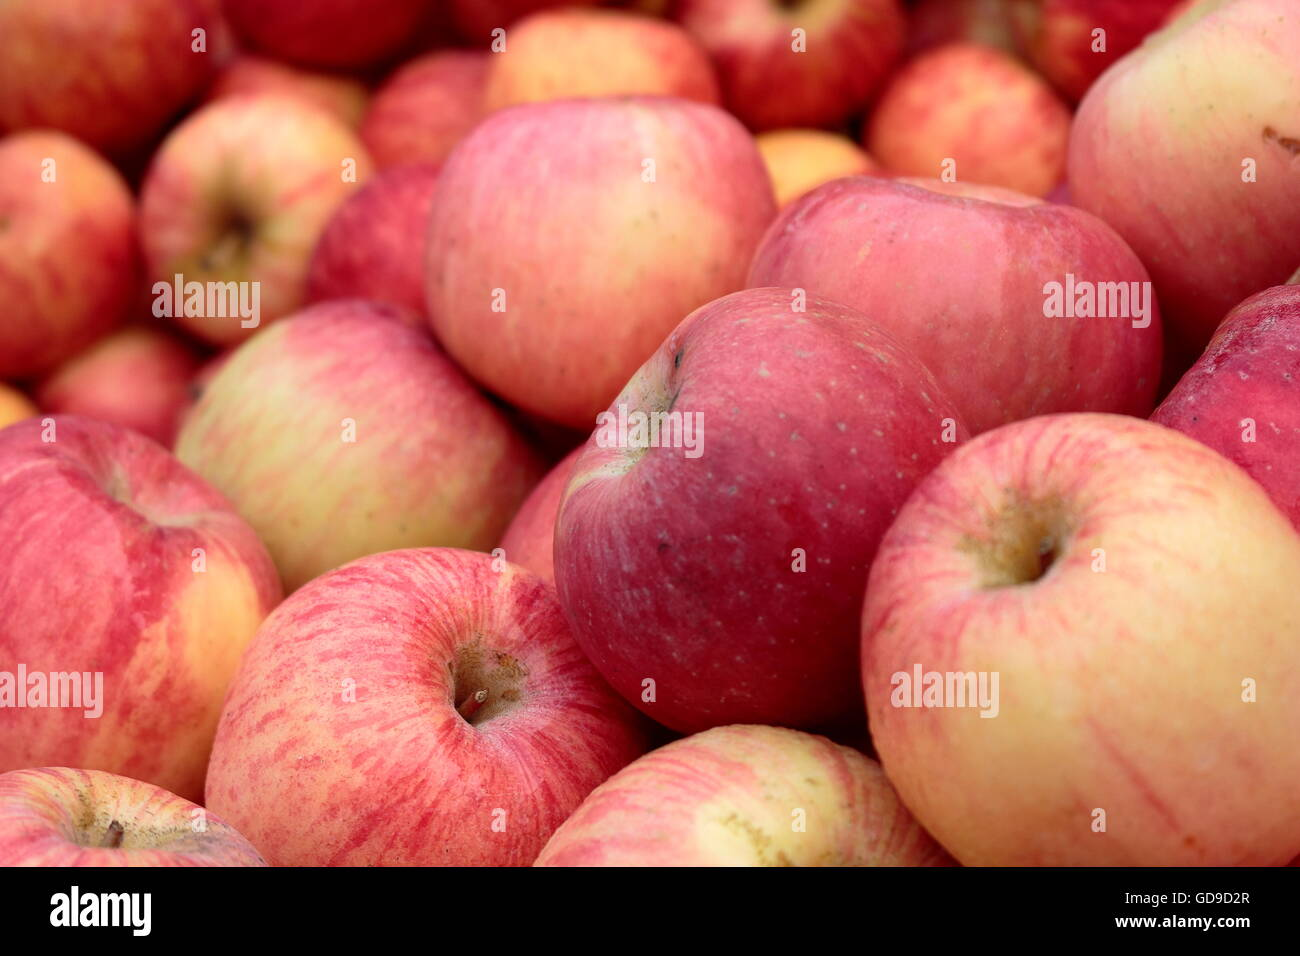 wallpaper of red apples stock photo: 111460575 - alamy